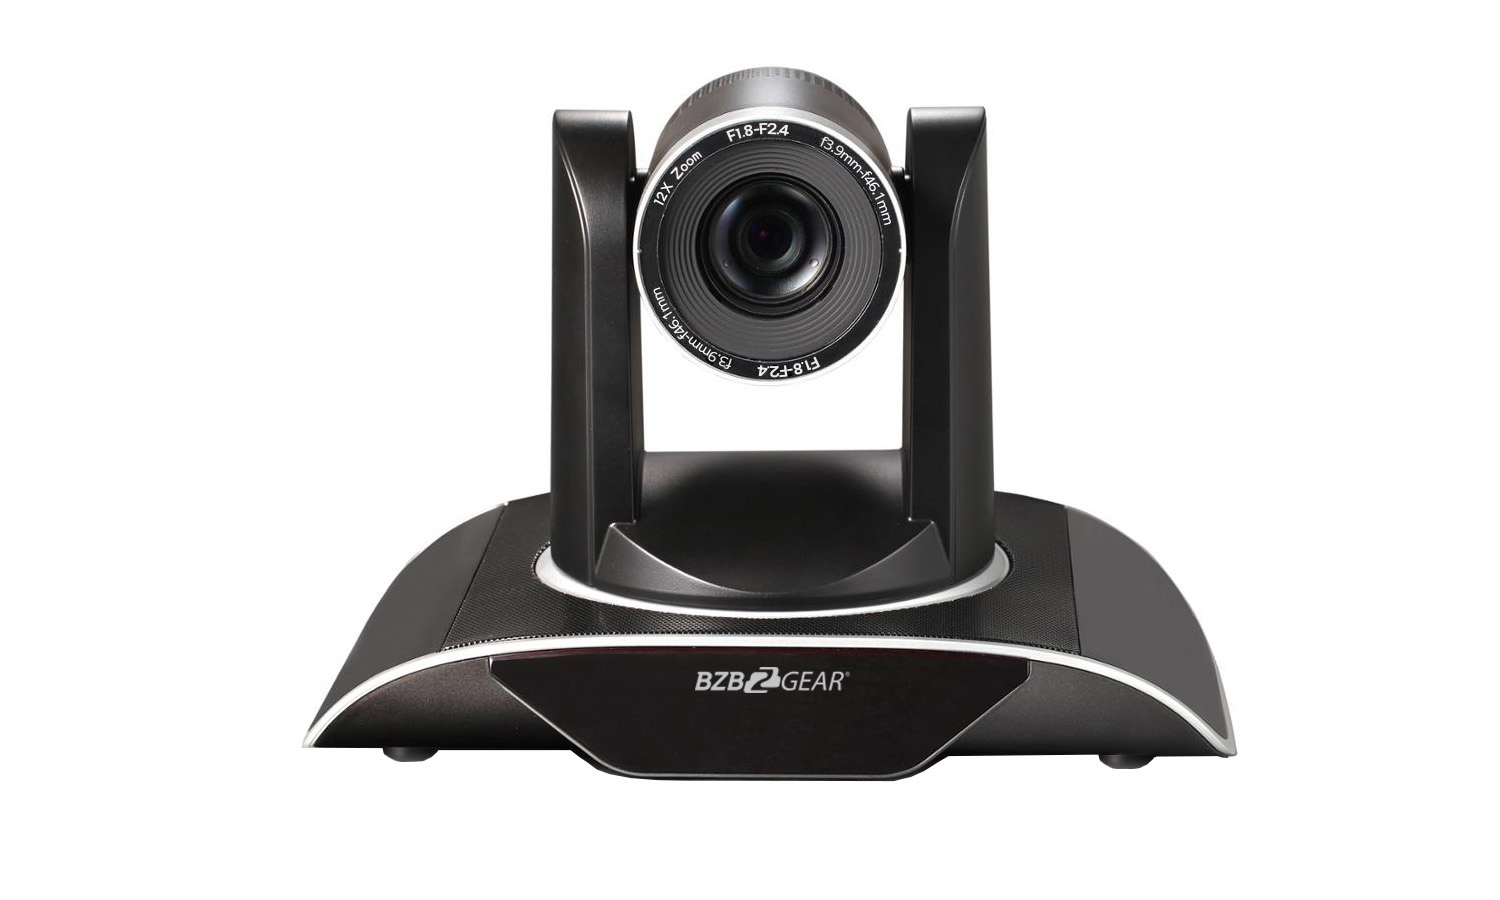 BG-BPTZ-12XHUHR PTZ 12X Zoom Full HD USB 2.0/3.0 HDMI RS232 Live Streaming Camera by BZBGEAR